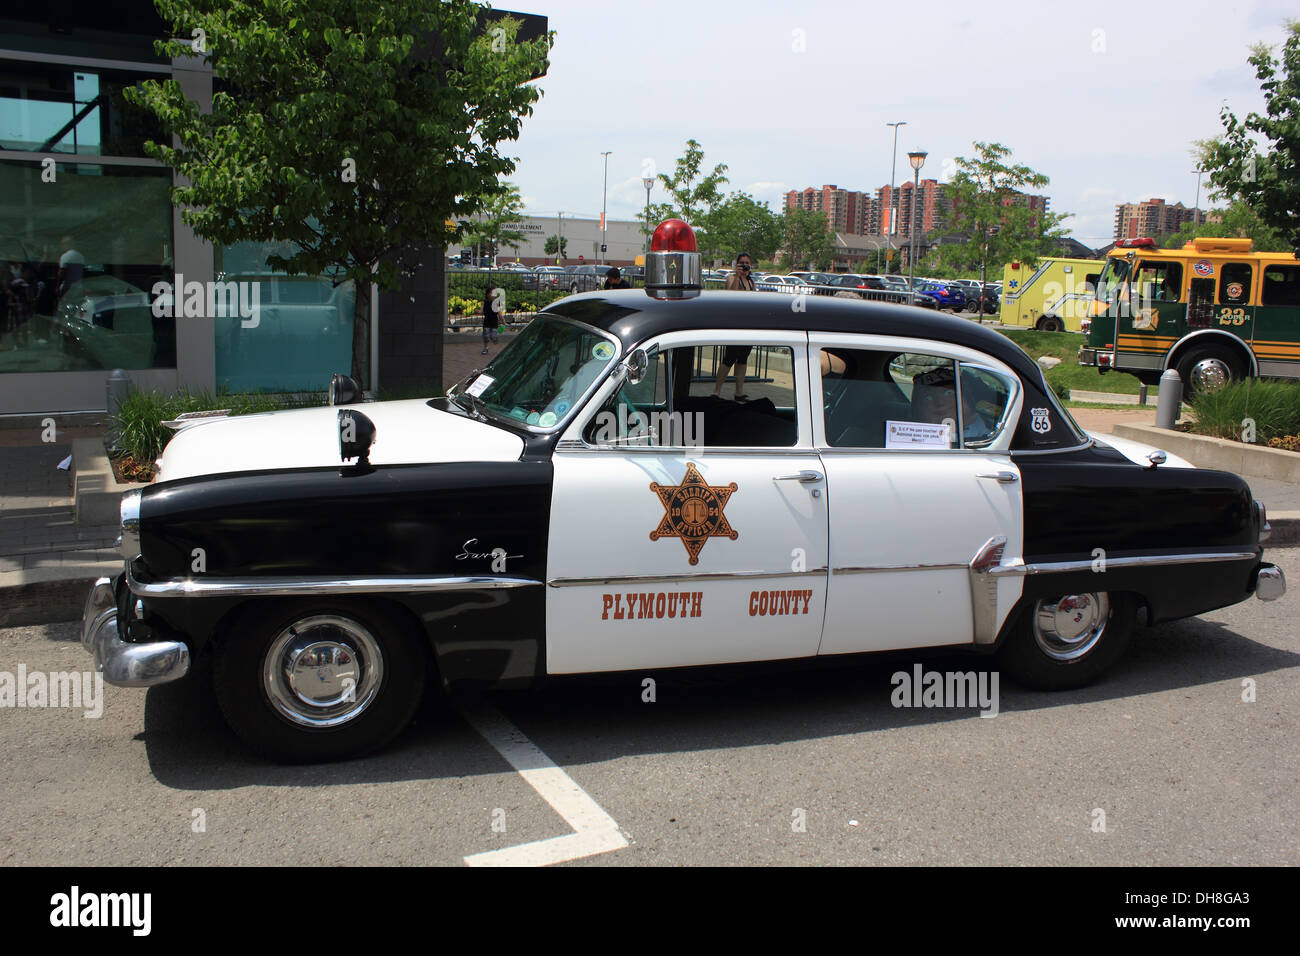 Police Car Old Stock Photos & Police Car Old Stock Images - Alamy